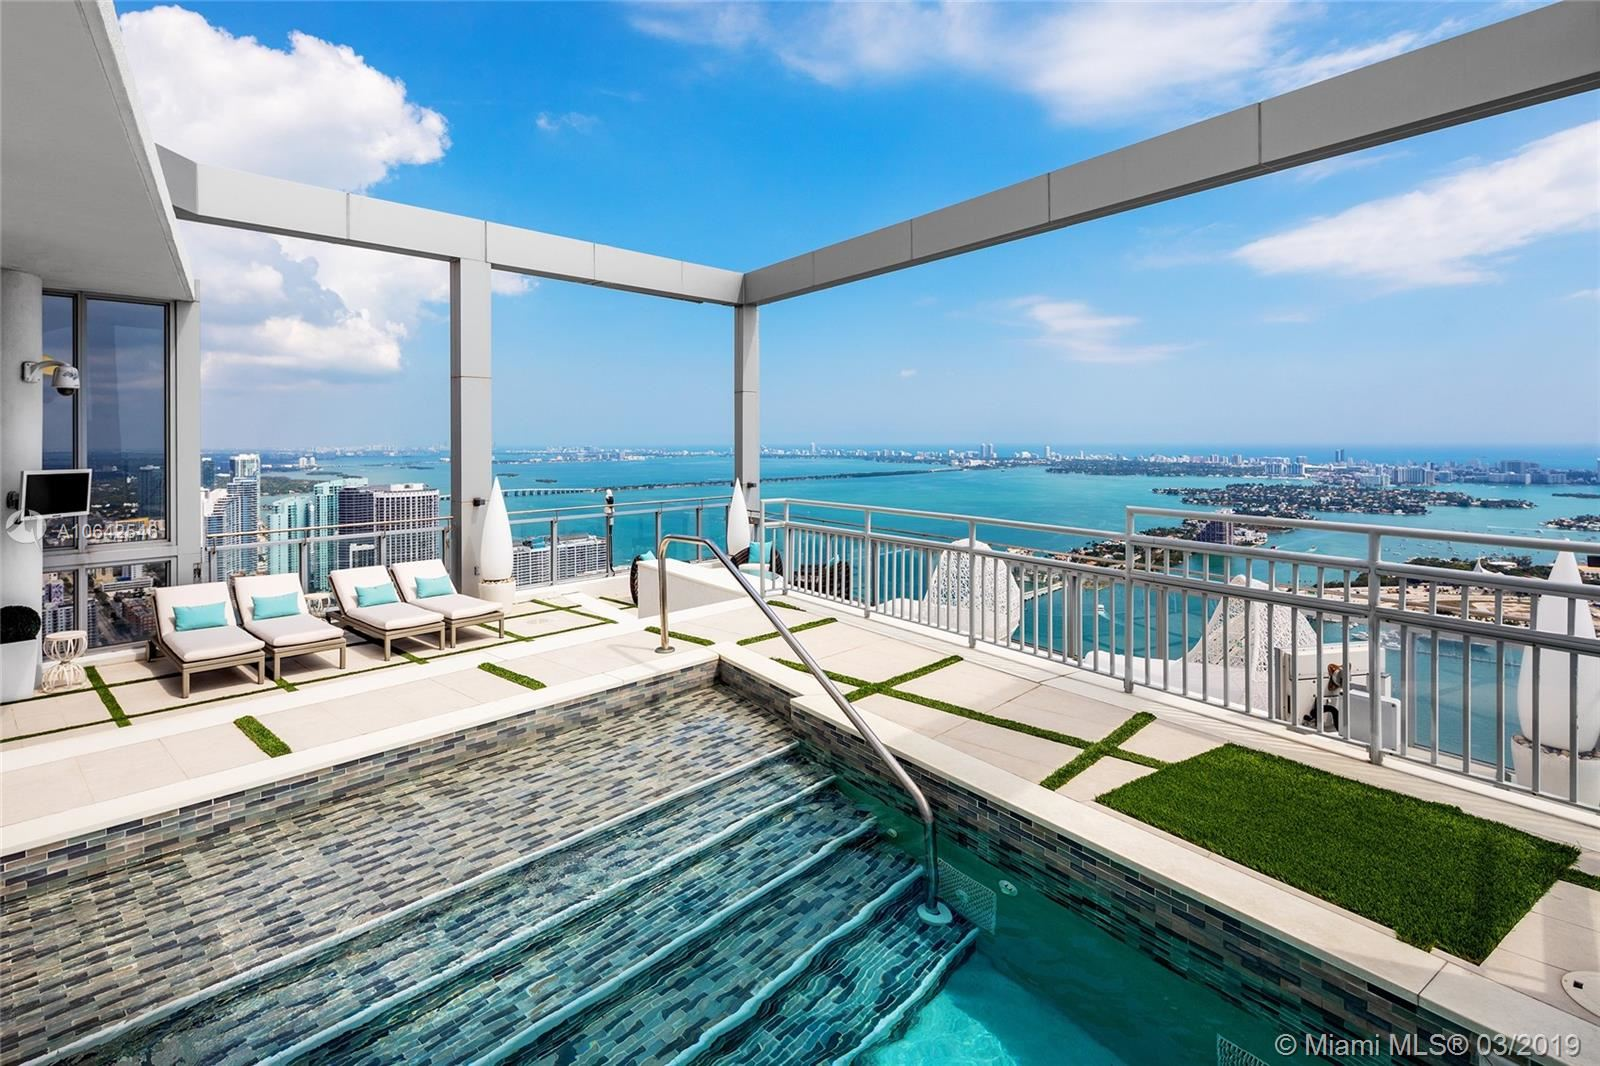 Photo 3 of Listing MLS a10642546 in 1100 Biscayne Blvd #6401 Miami FL 33132